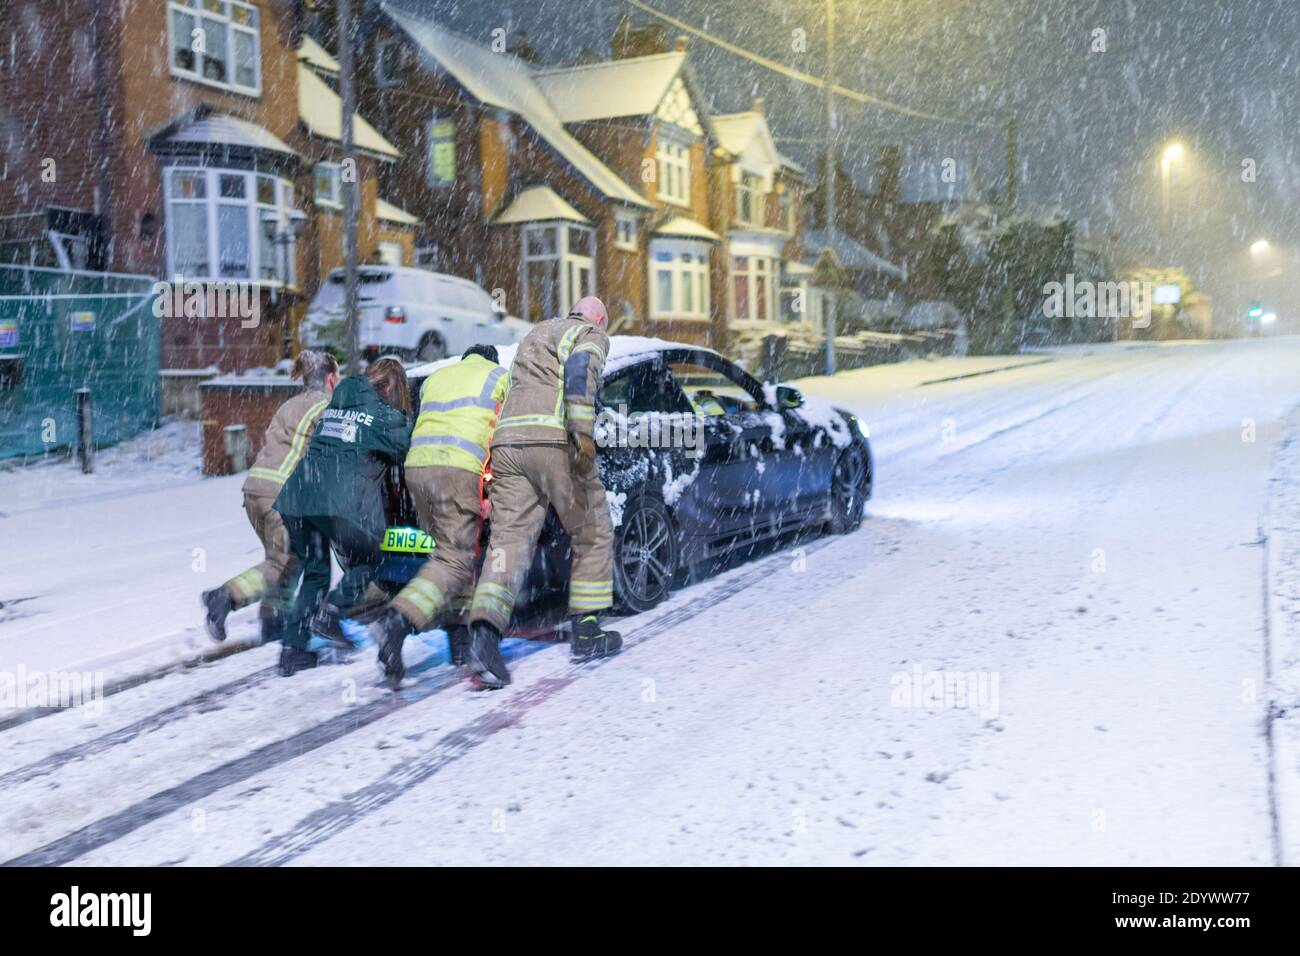 Cradley Heath, West Midlands, UK. 28th Dec, 2020. A fire crew pushes a stranded paramedic's car up a snowy hill this morning, as she tries to make it into work for her day's shift. Snow settles and causes traffic delays in Cradley Heath in the West Midlands Credit: Peter Lopeman/Alamy Live News Stock Photo